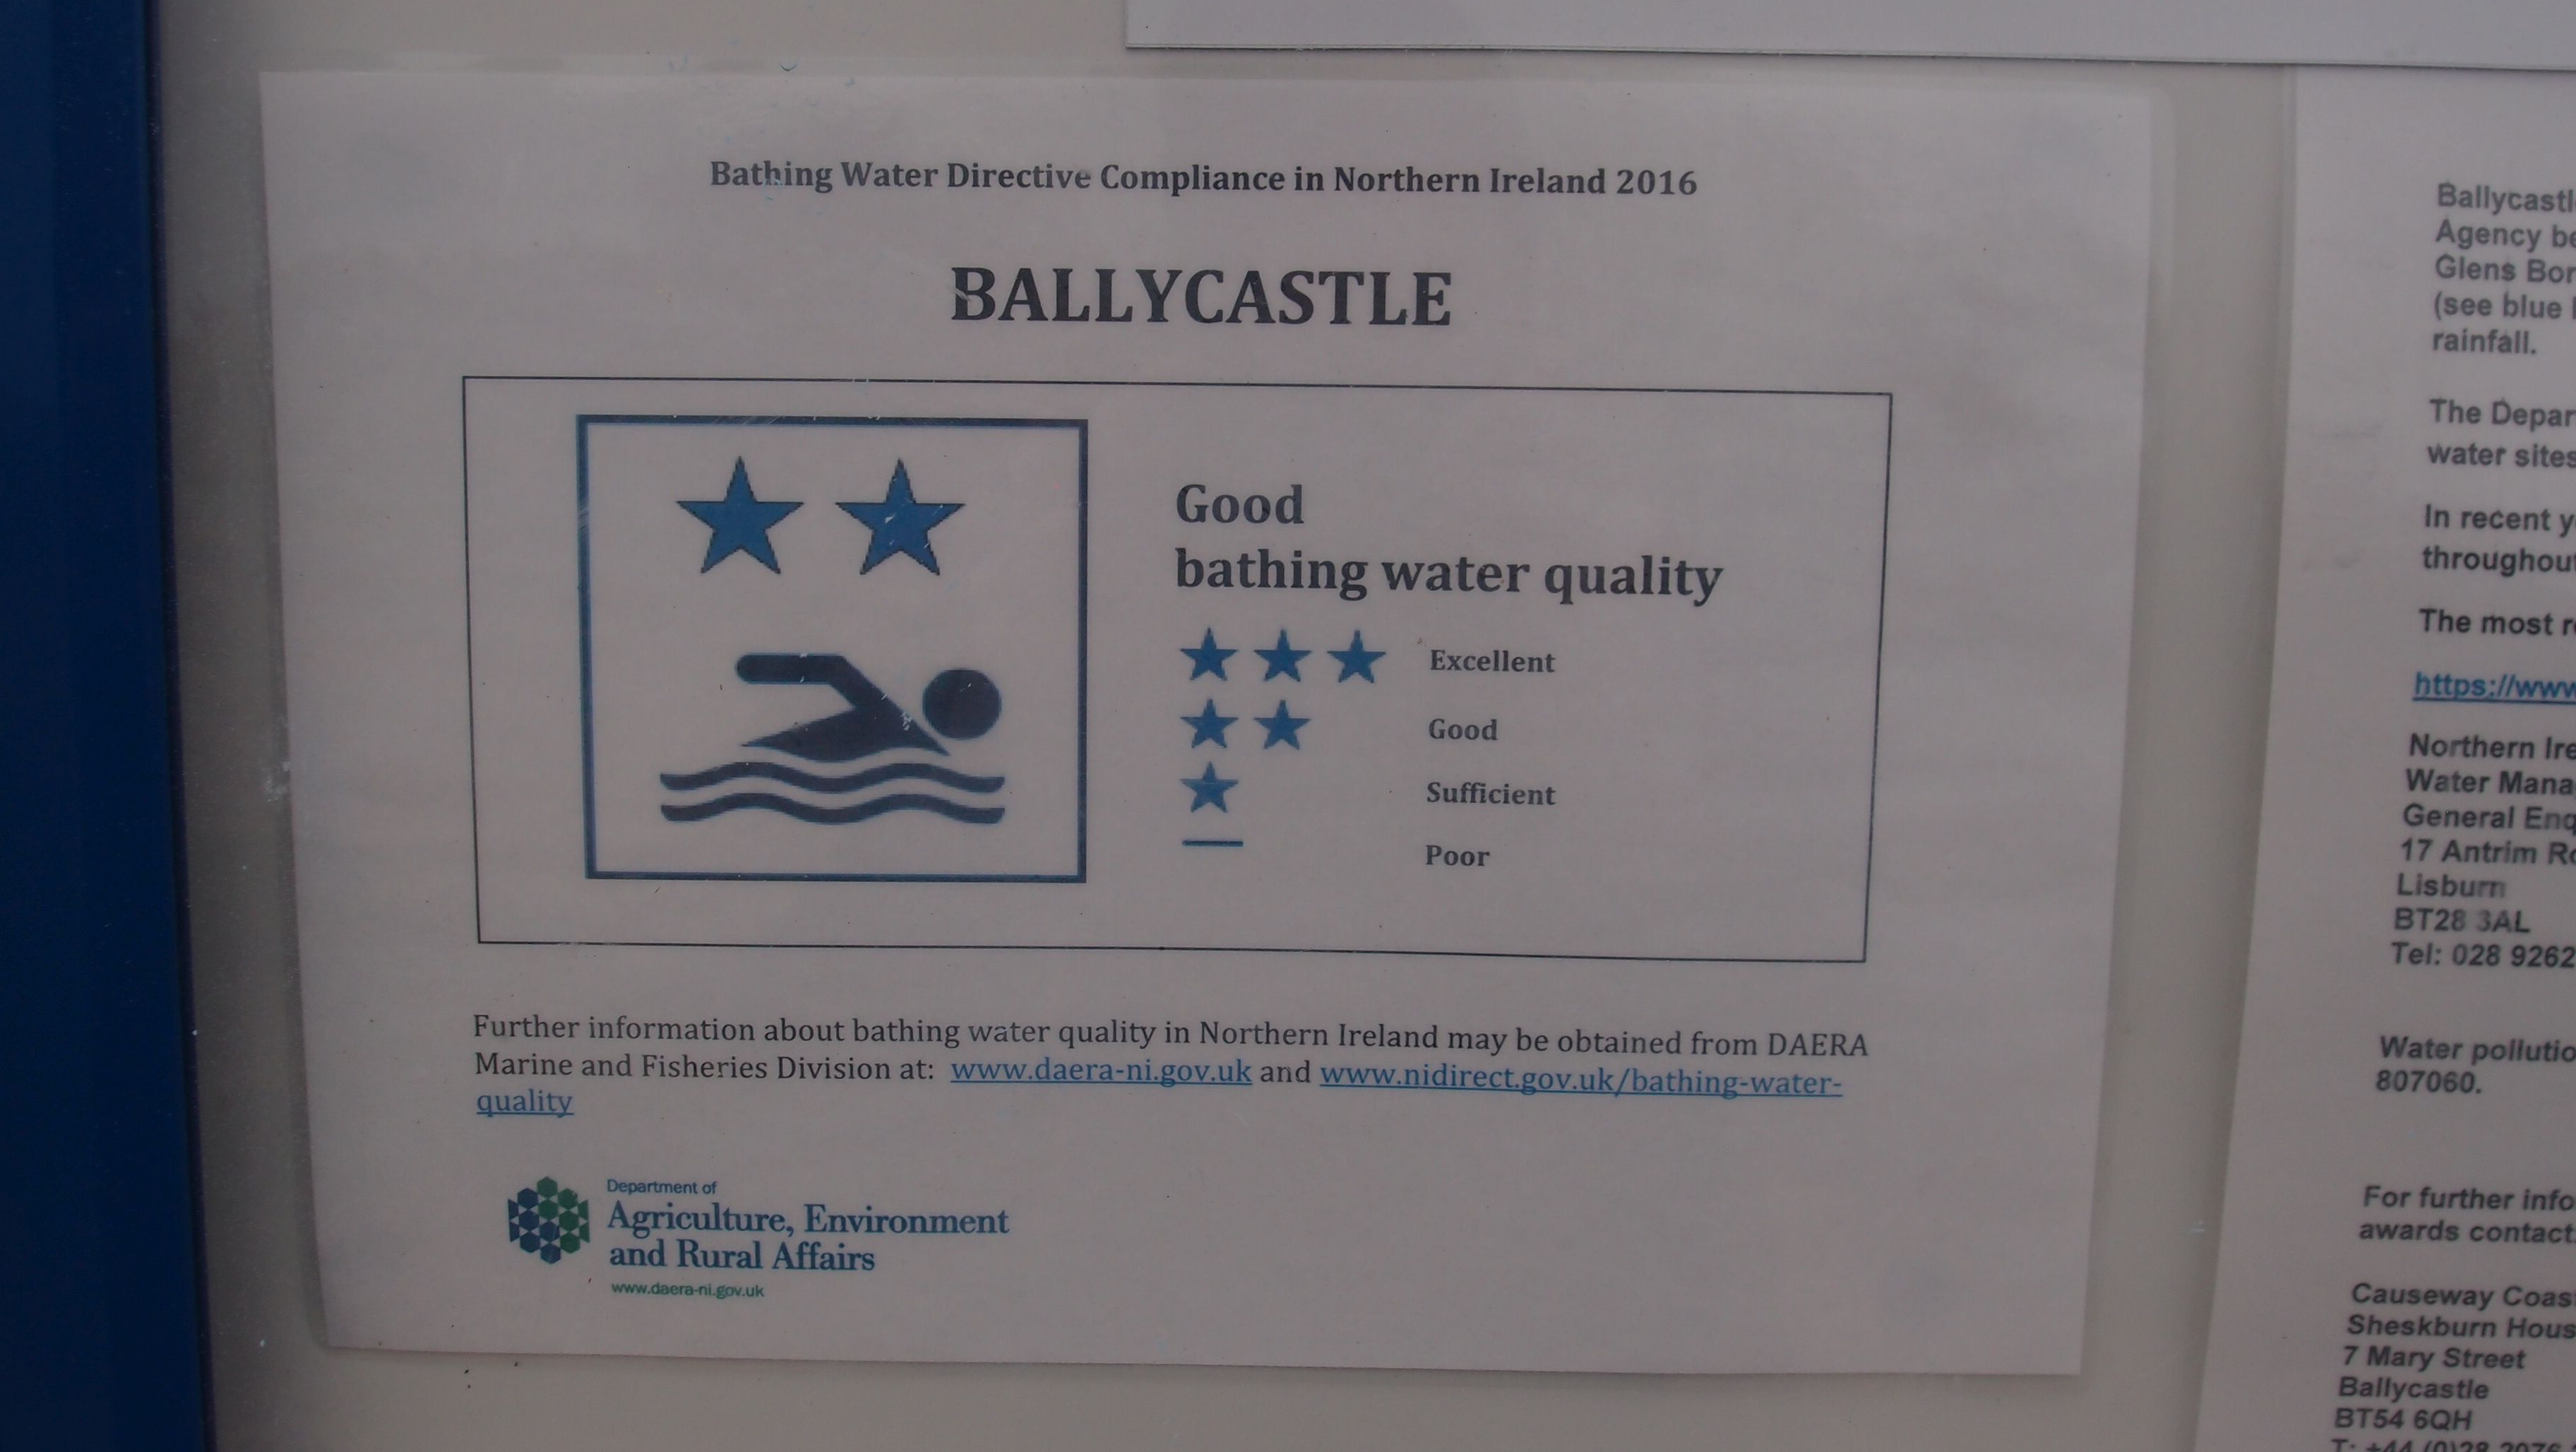 Ballycastle bathing quality